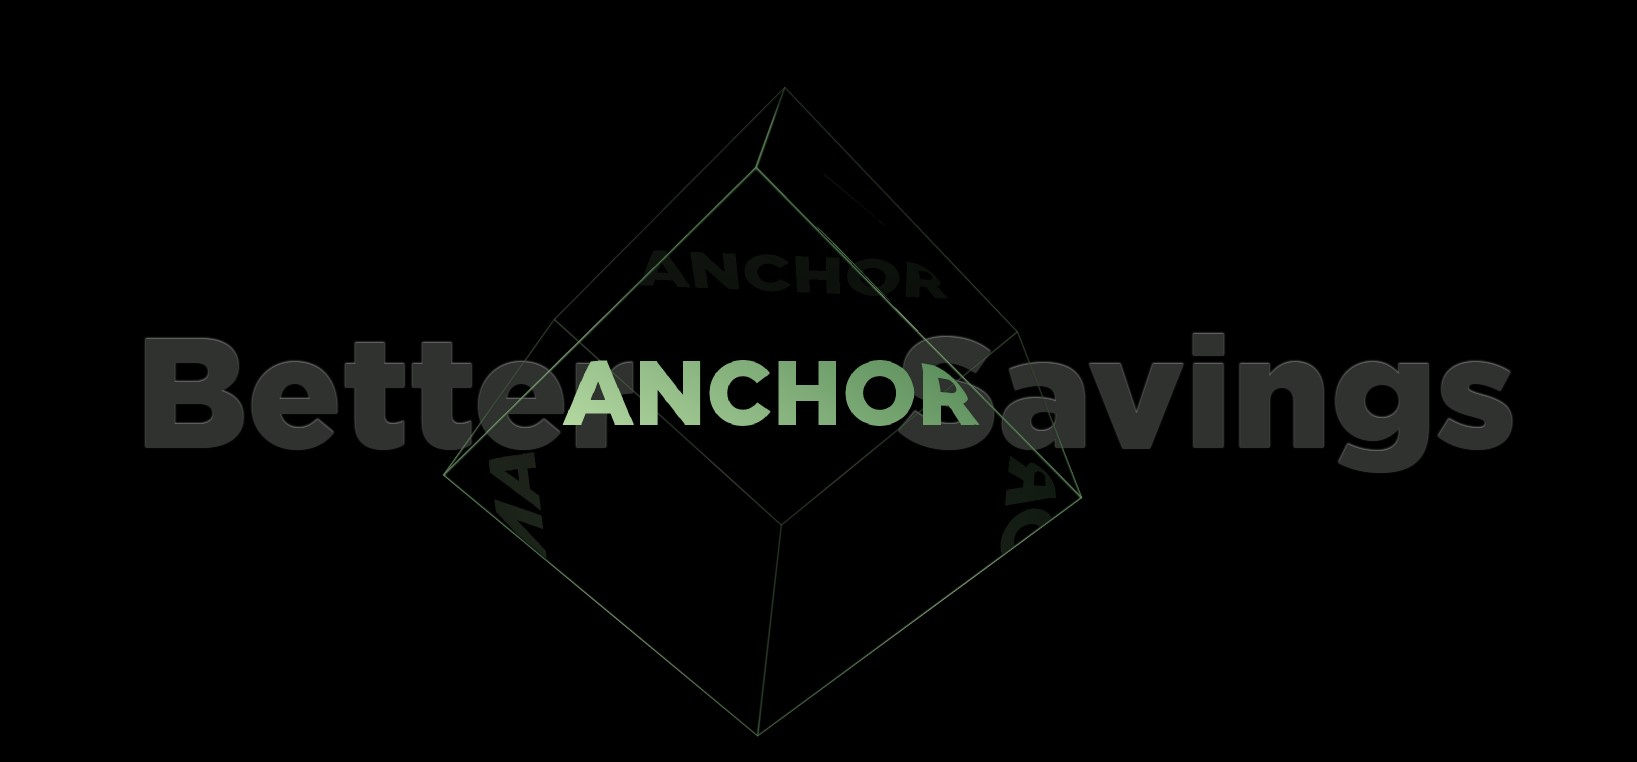 Anchor Protocol is a non-custodial and decentralized platform that offers convenient and straightforward products focused on savings.